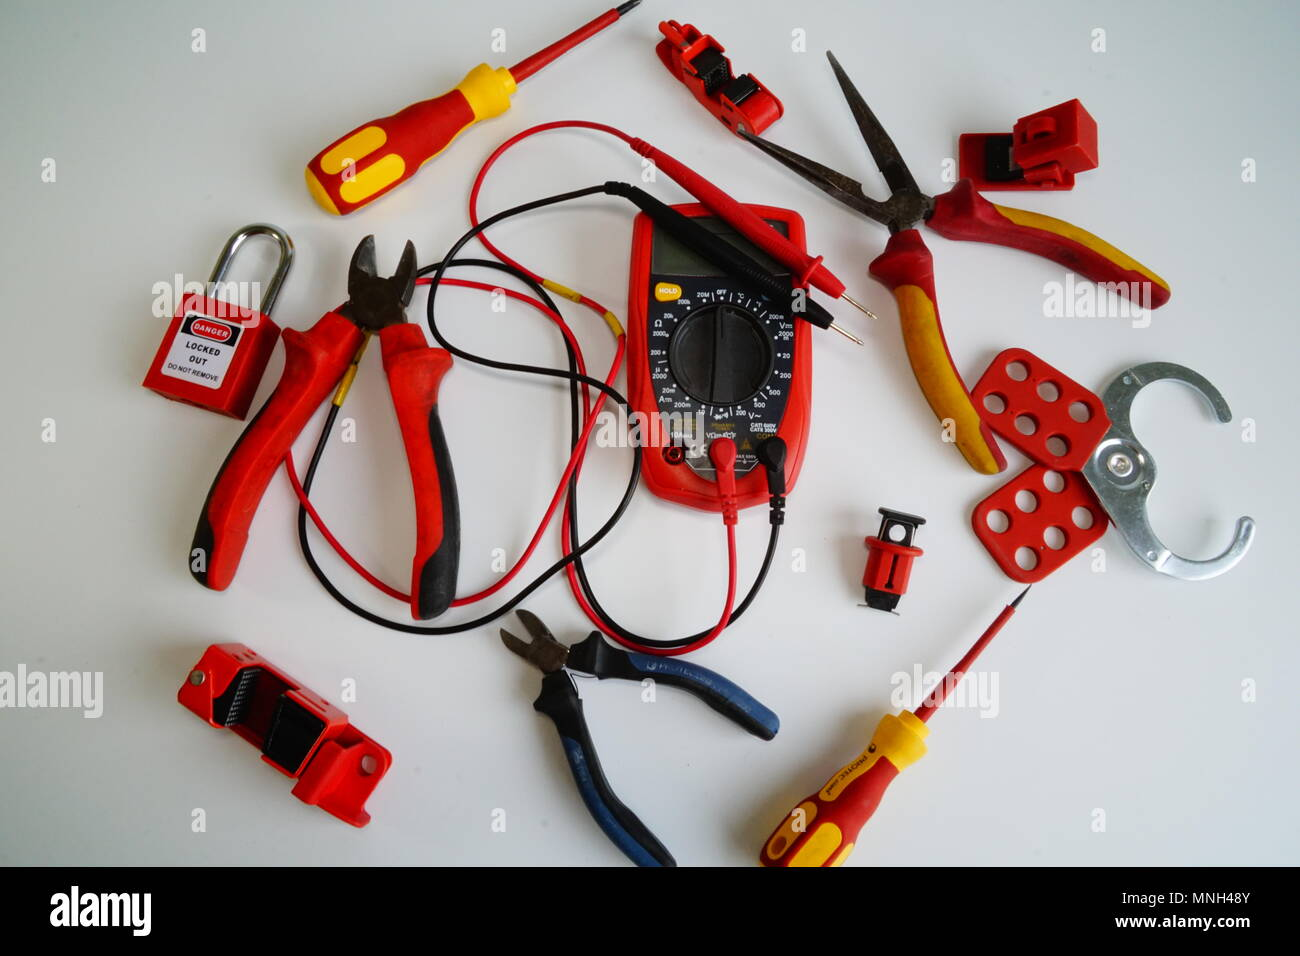 Fine The Electrical Safety Measurement And Installation Equipment Tools Wiring Digital Resources Spoatbouhousnl